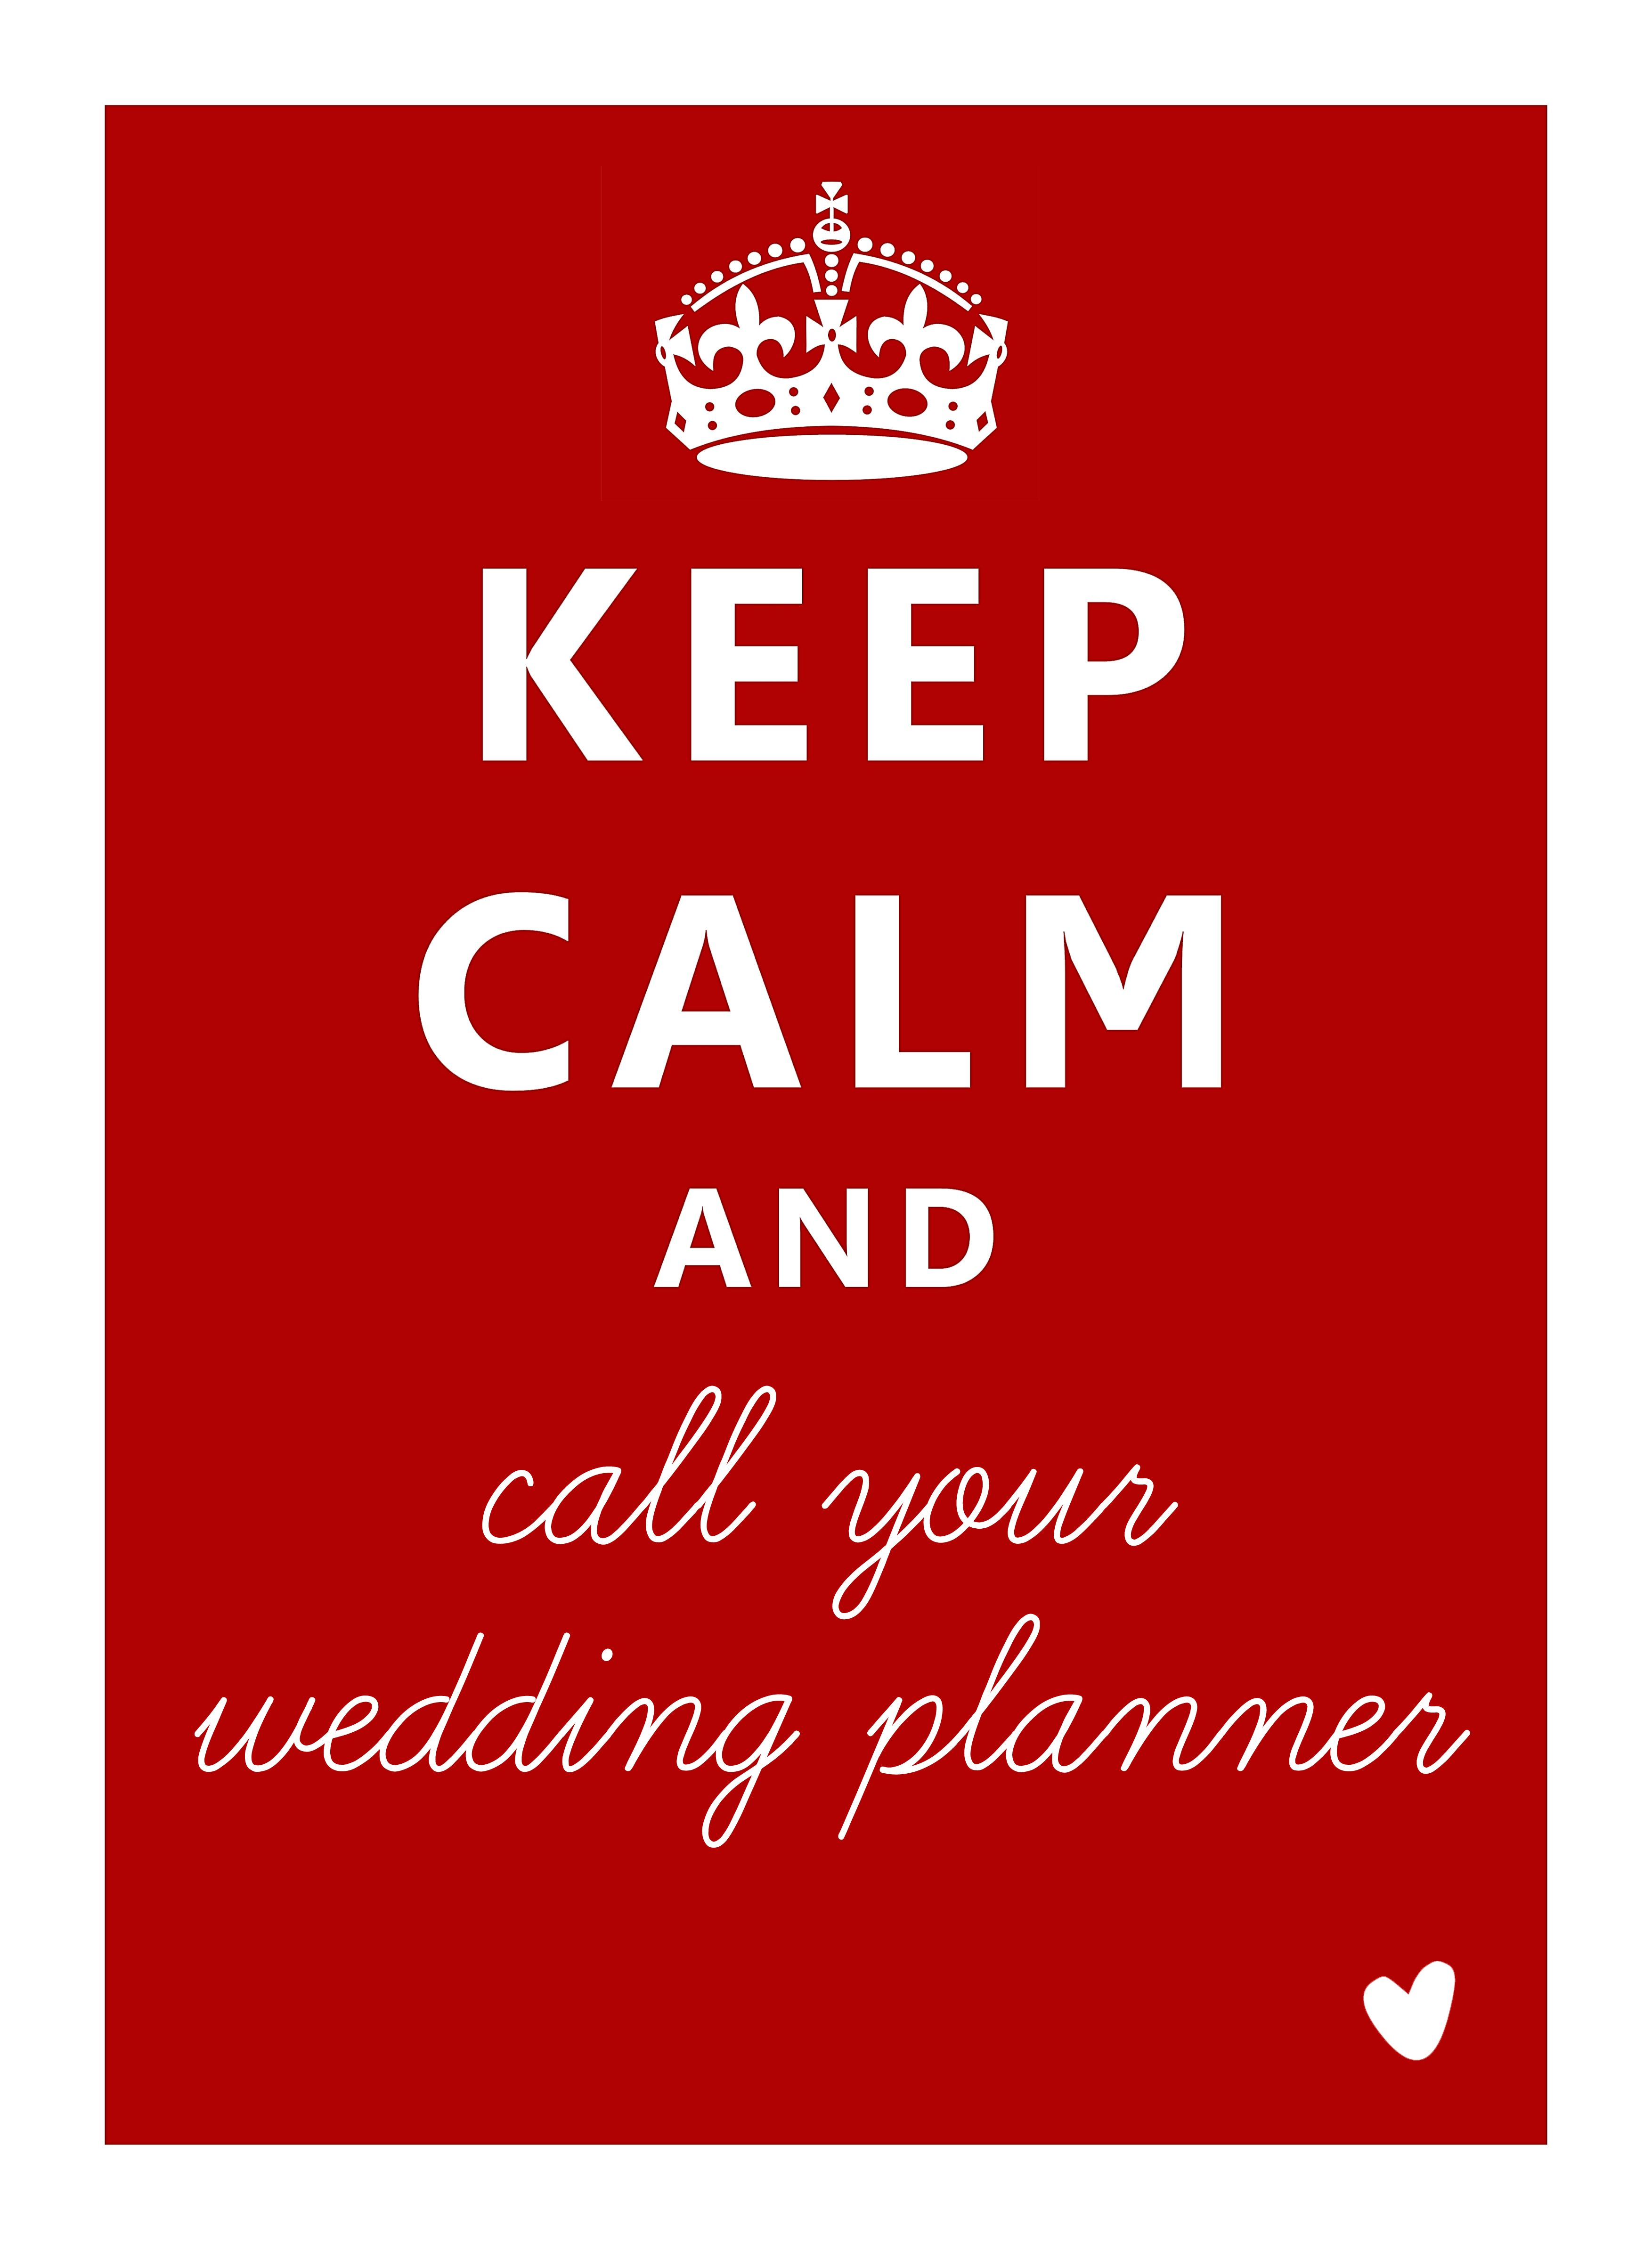 Wedding Planner Quotes And Sayings Topsimages